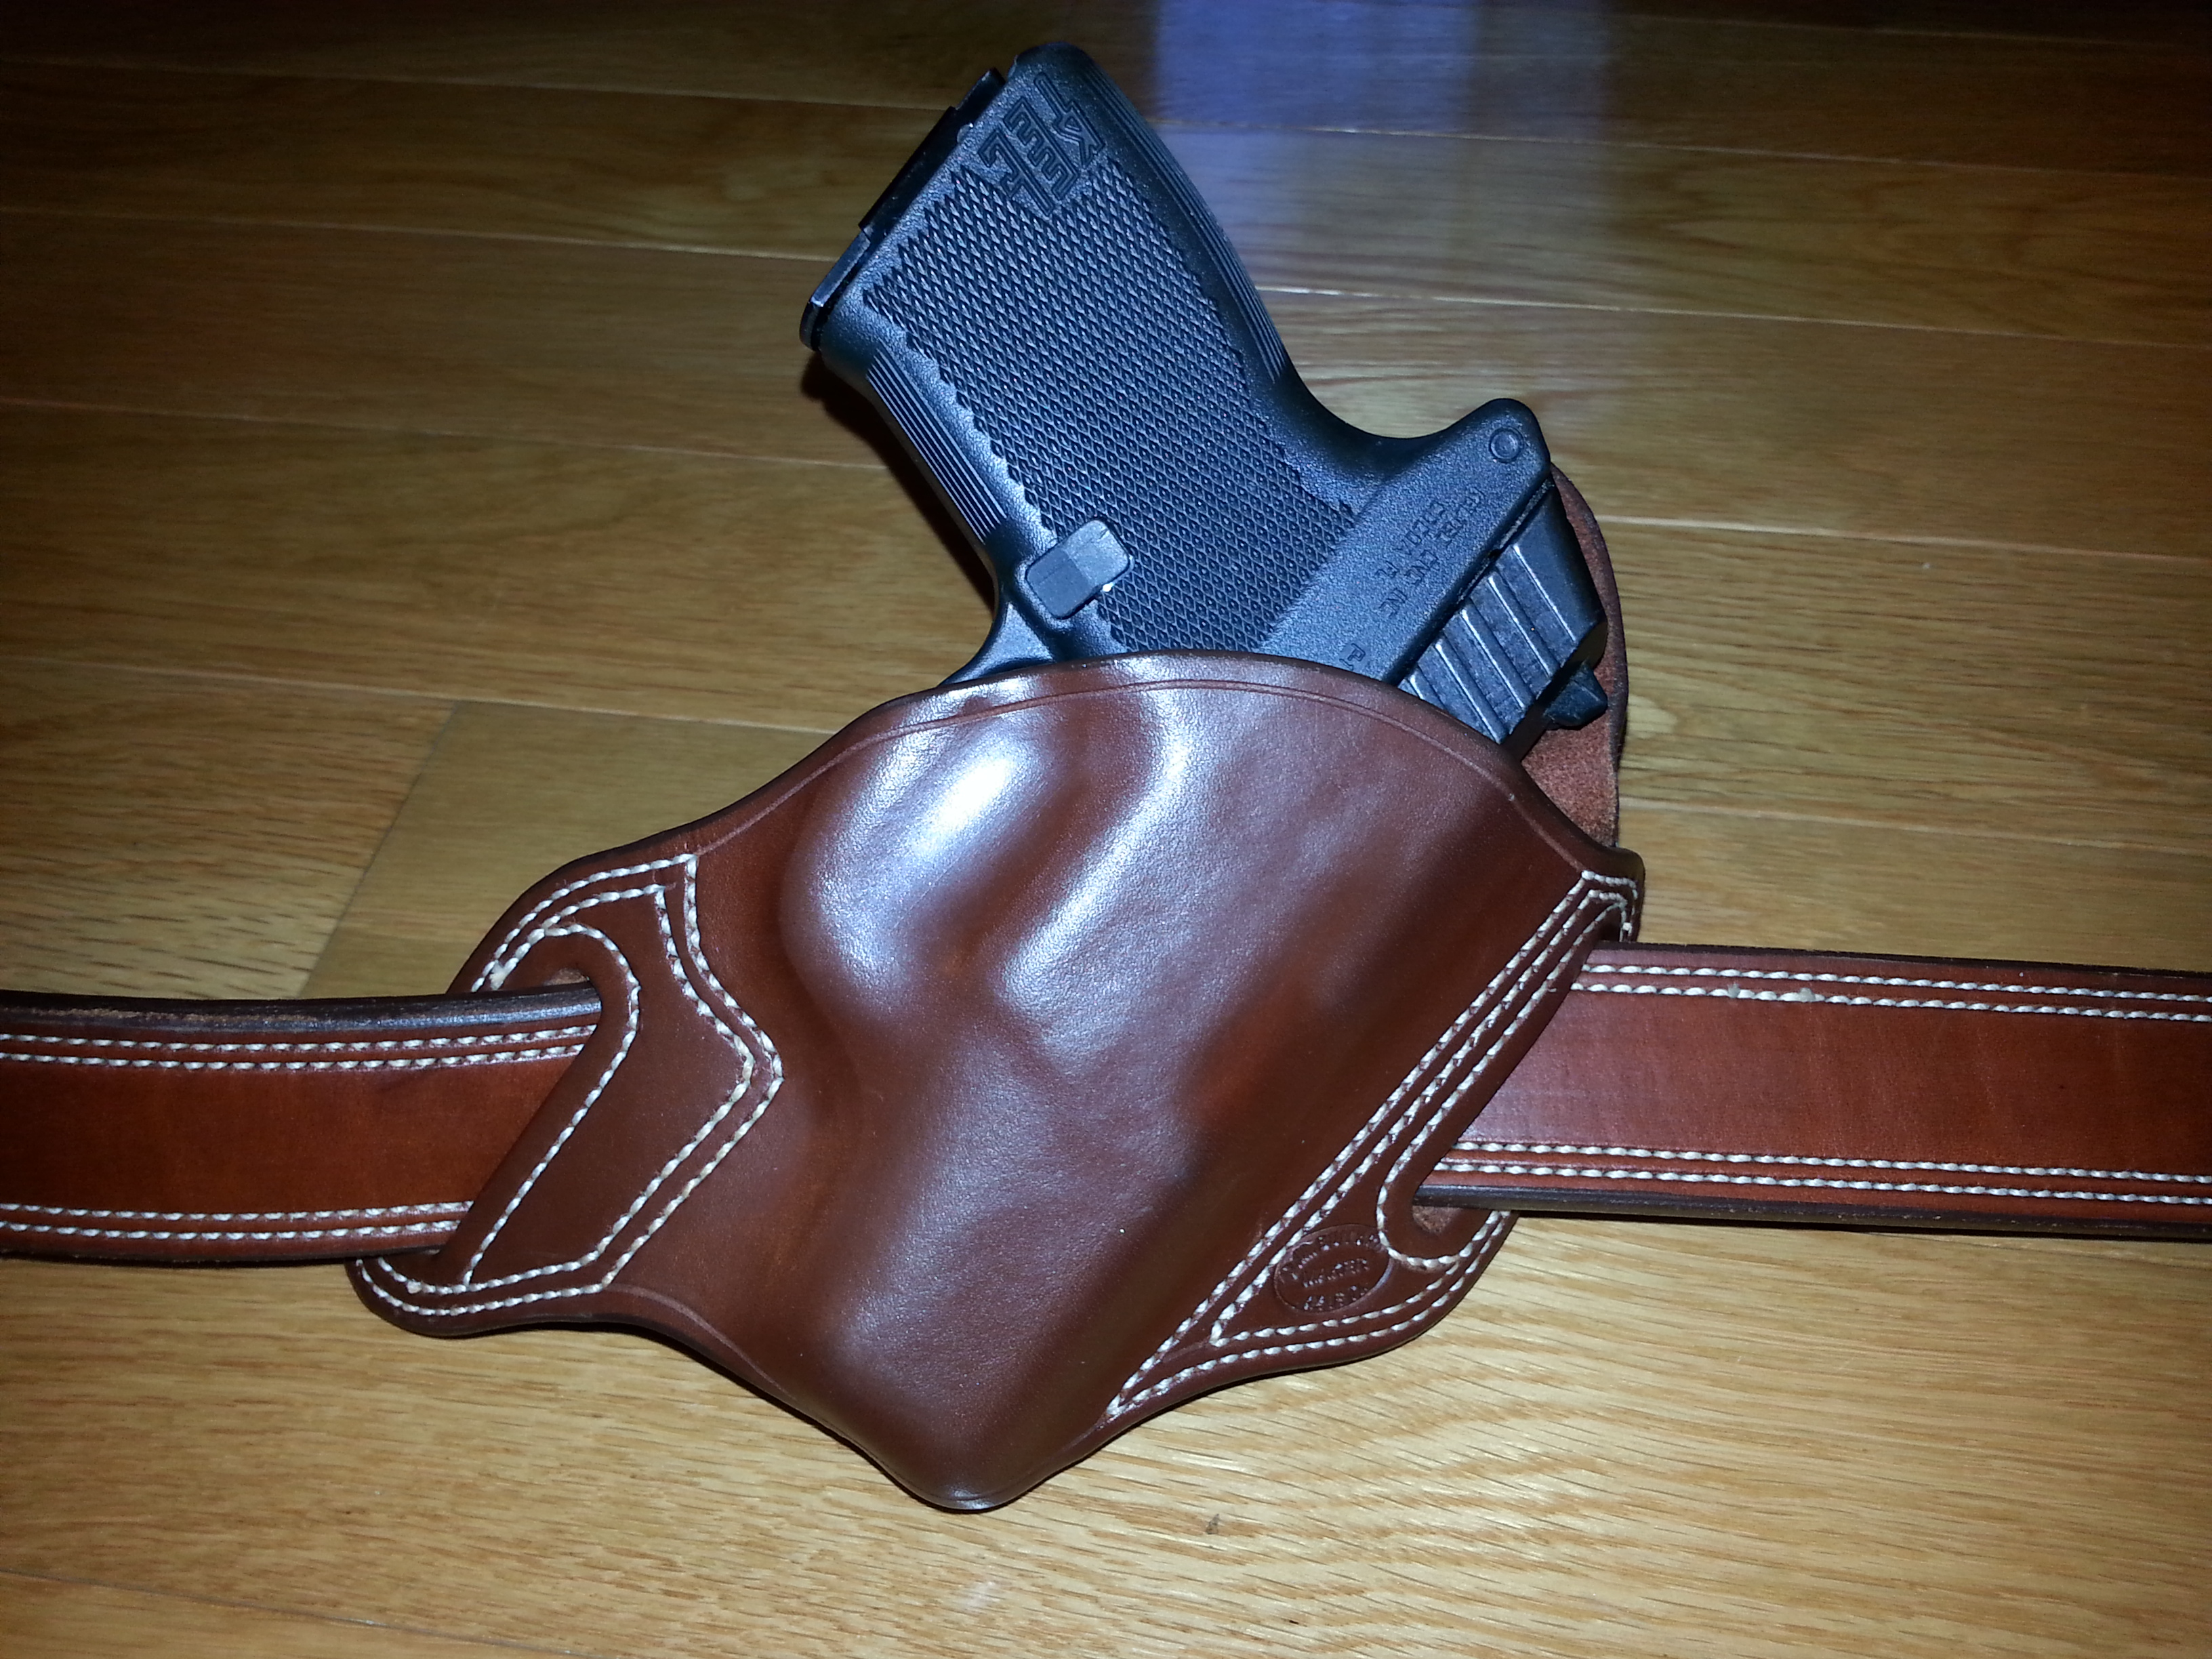 WTS: DM Bullard Holster for Kel Tec P11